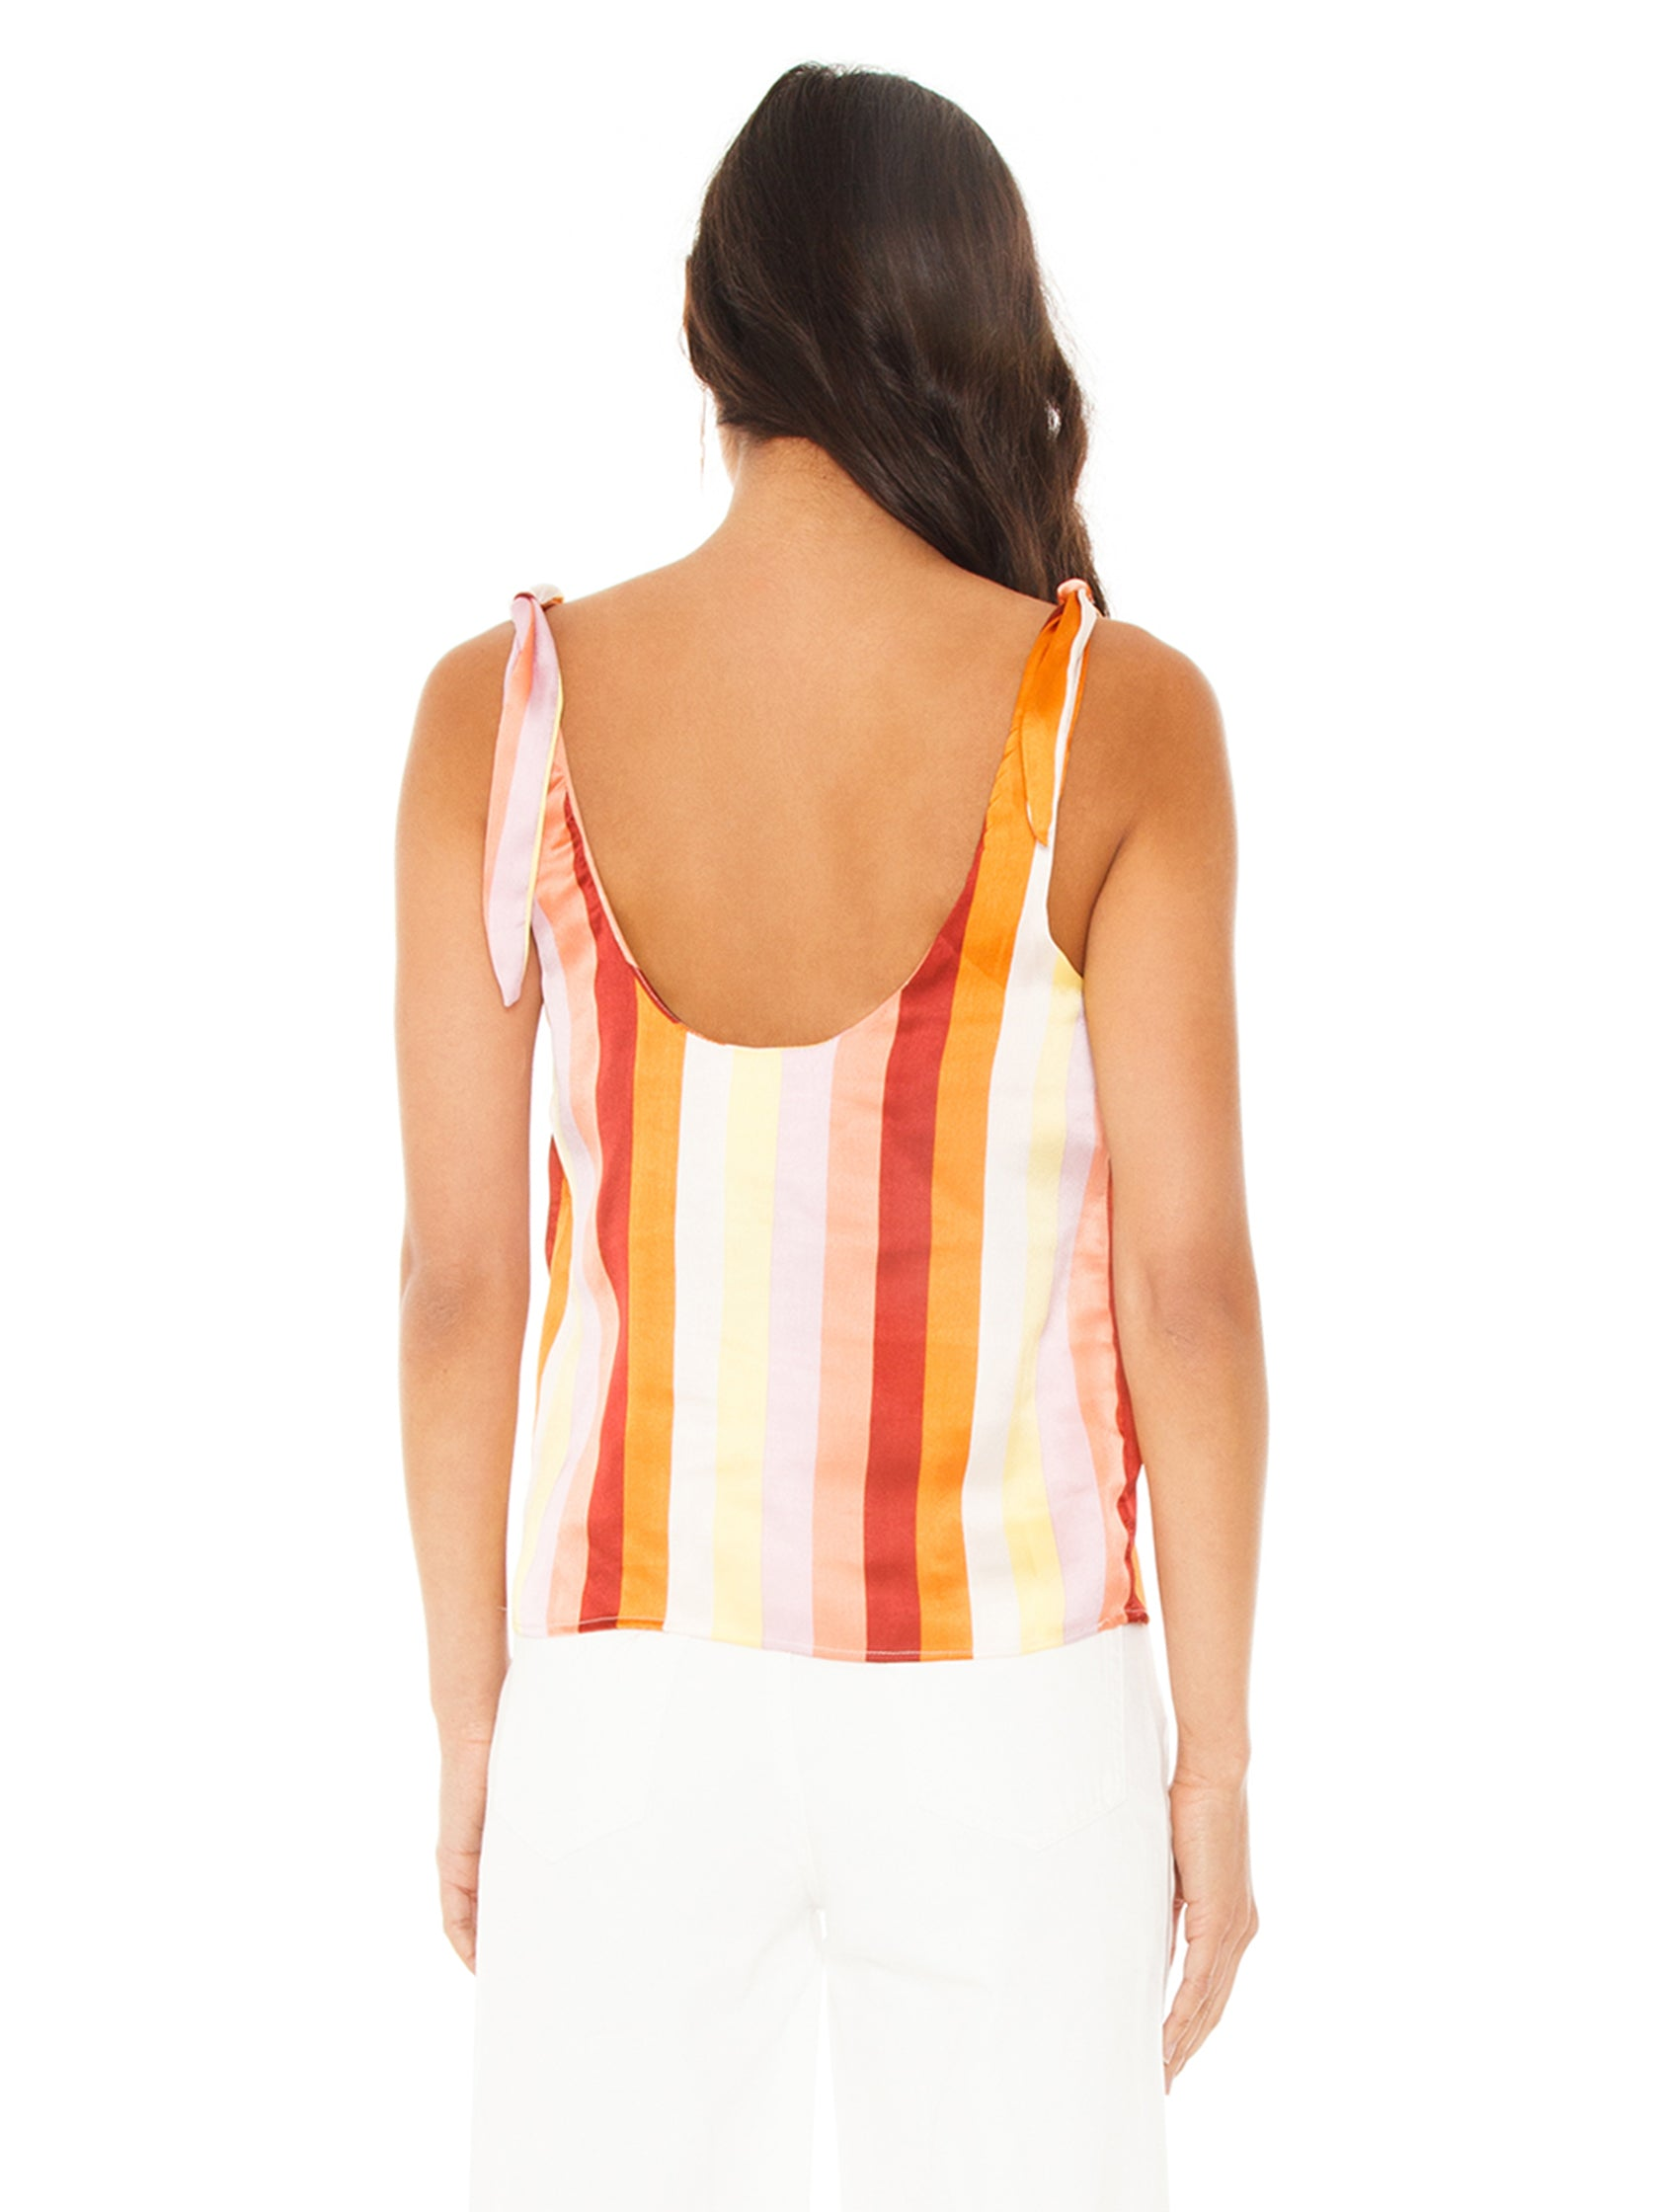 Women outfit in a top rental from FLETCH called Ayla Stripe Tank Top